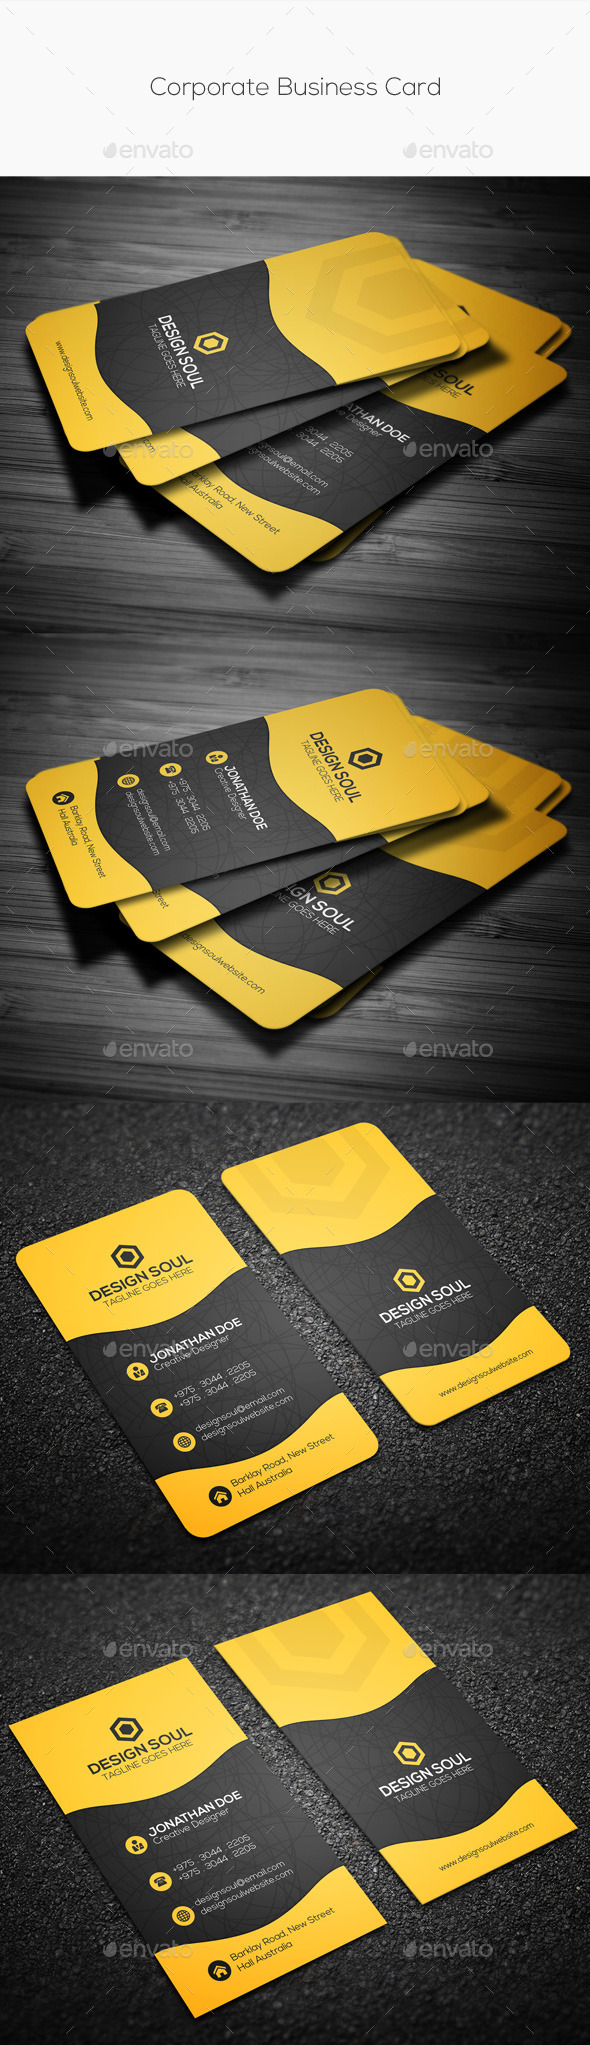 GraphicRiver Corporate Business Card 10272189